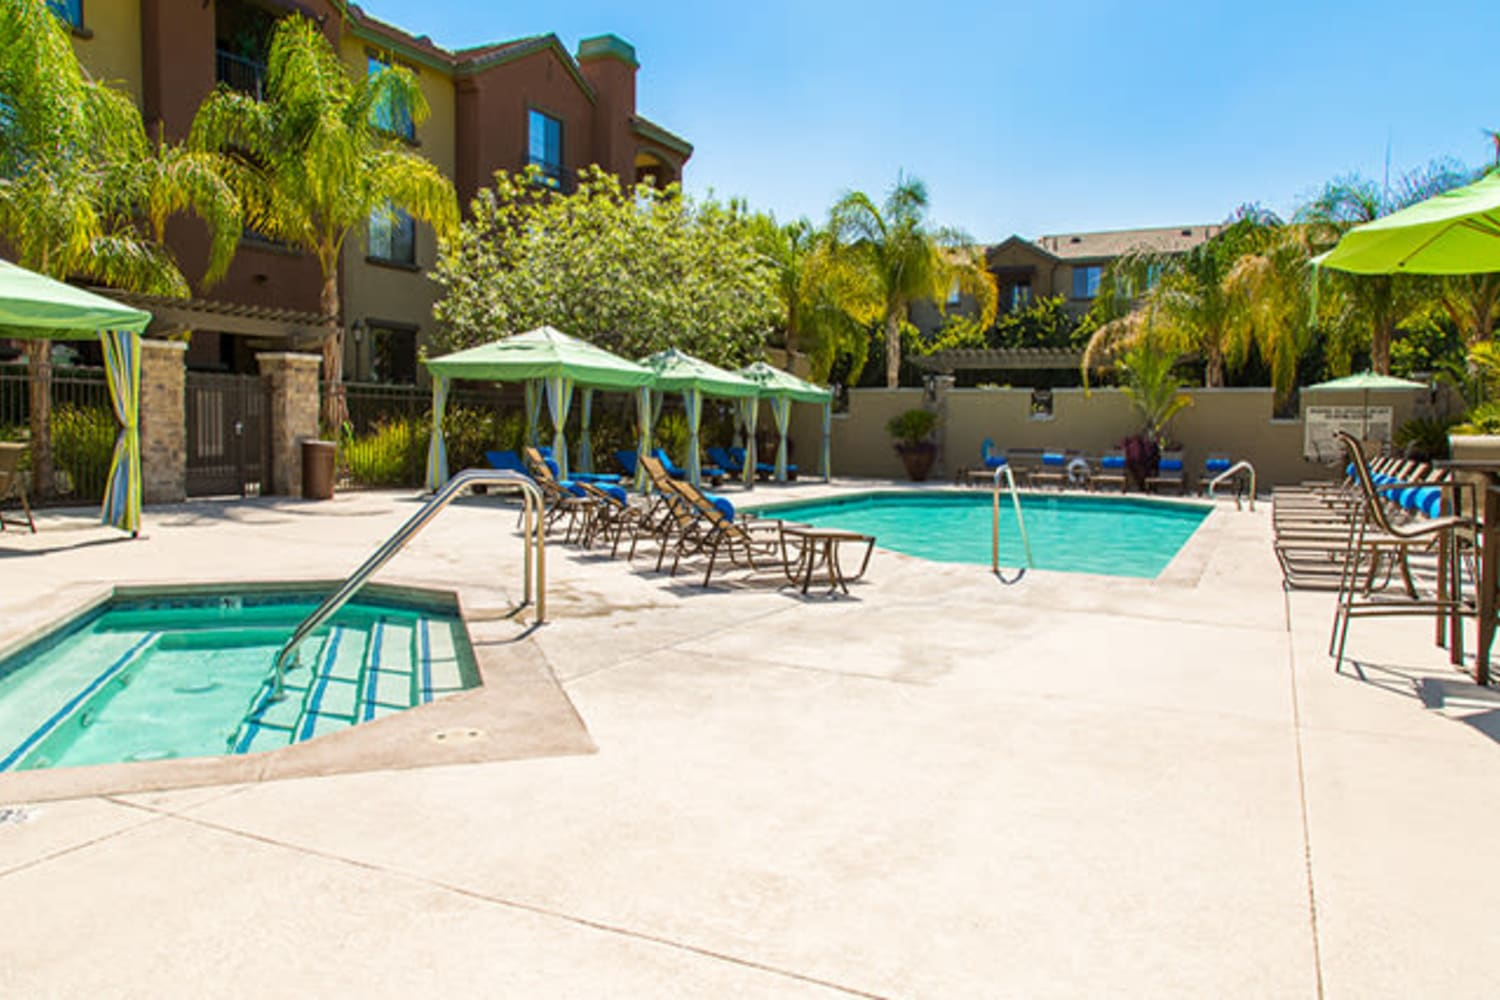 Swimming pool and hot tub at Links at Westridge in Valencia, California